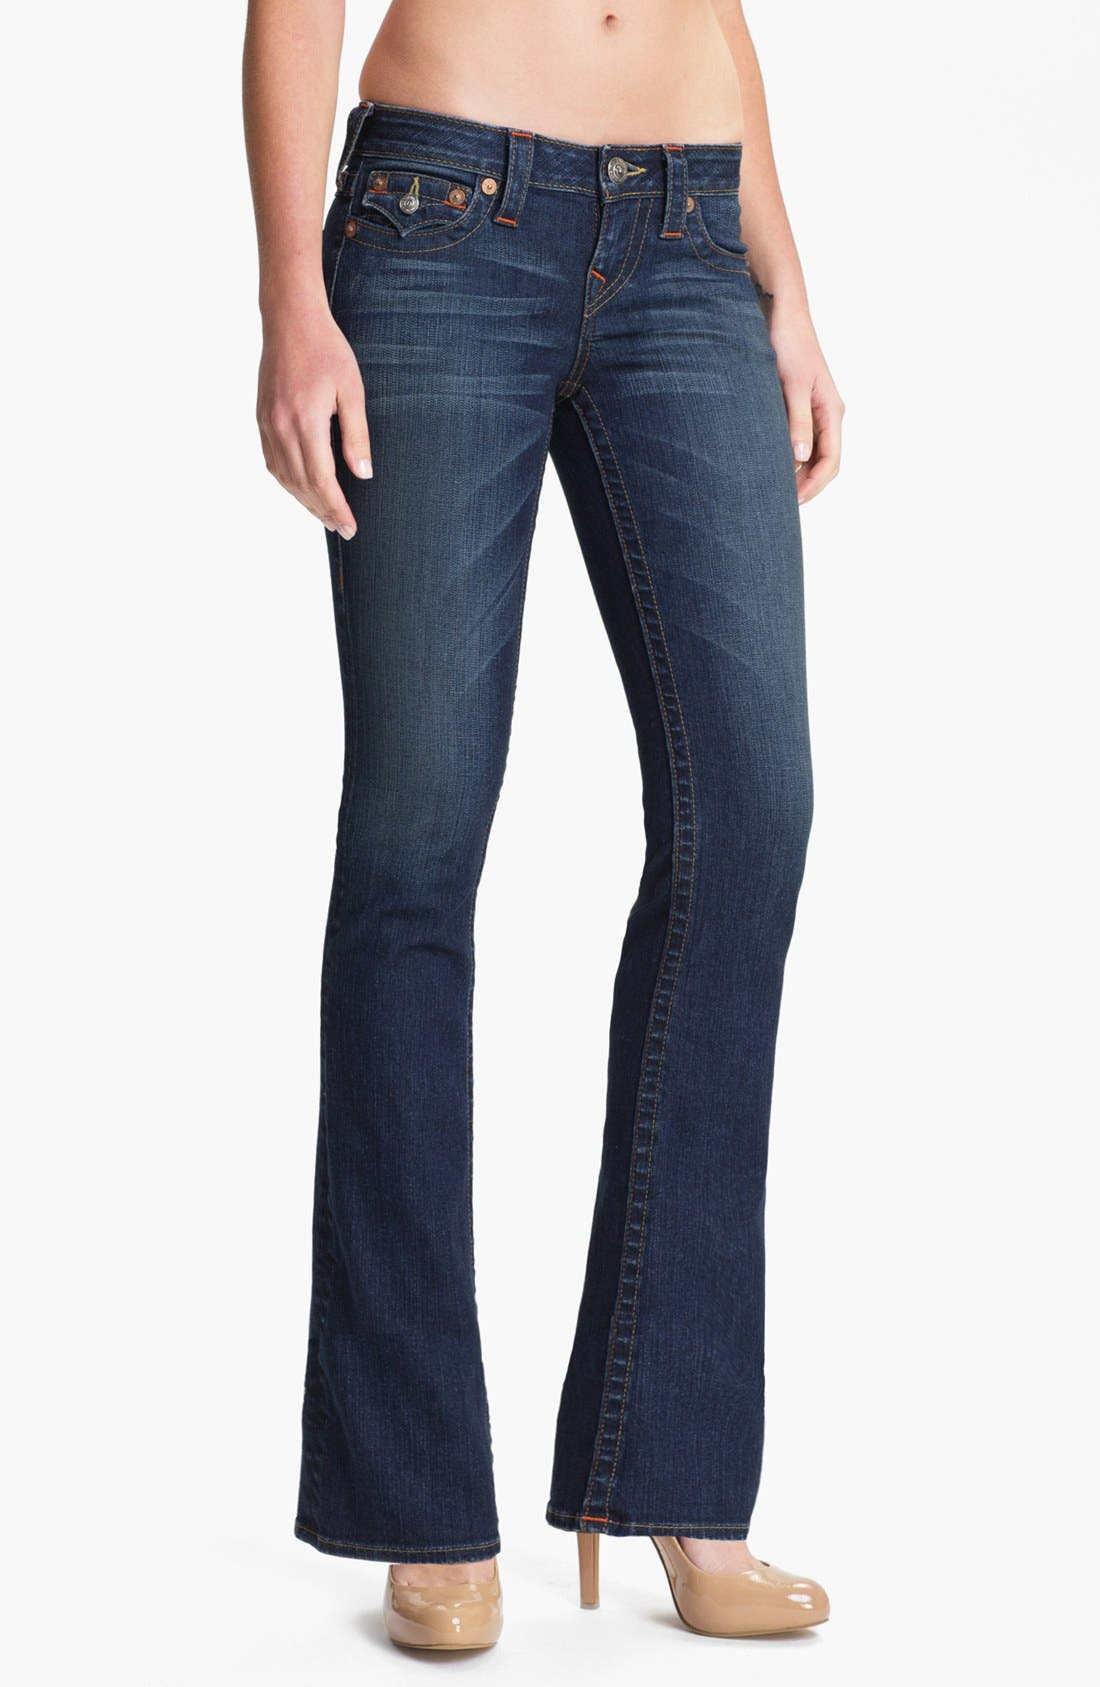 Main Image - True Religion Brand Jeans 'Becky' Bootcut Jeans (Dusty Skies) (Petite)